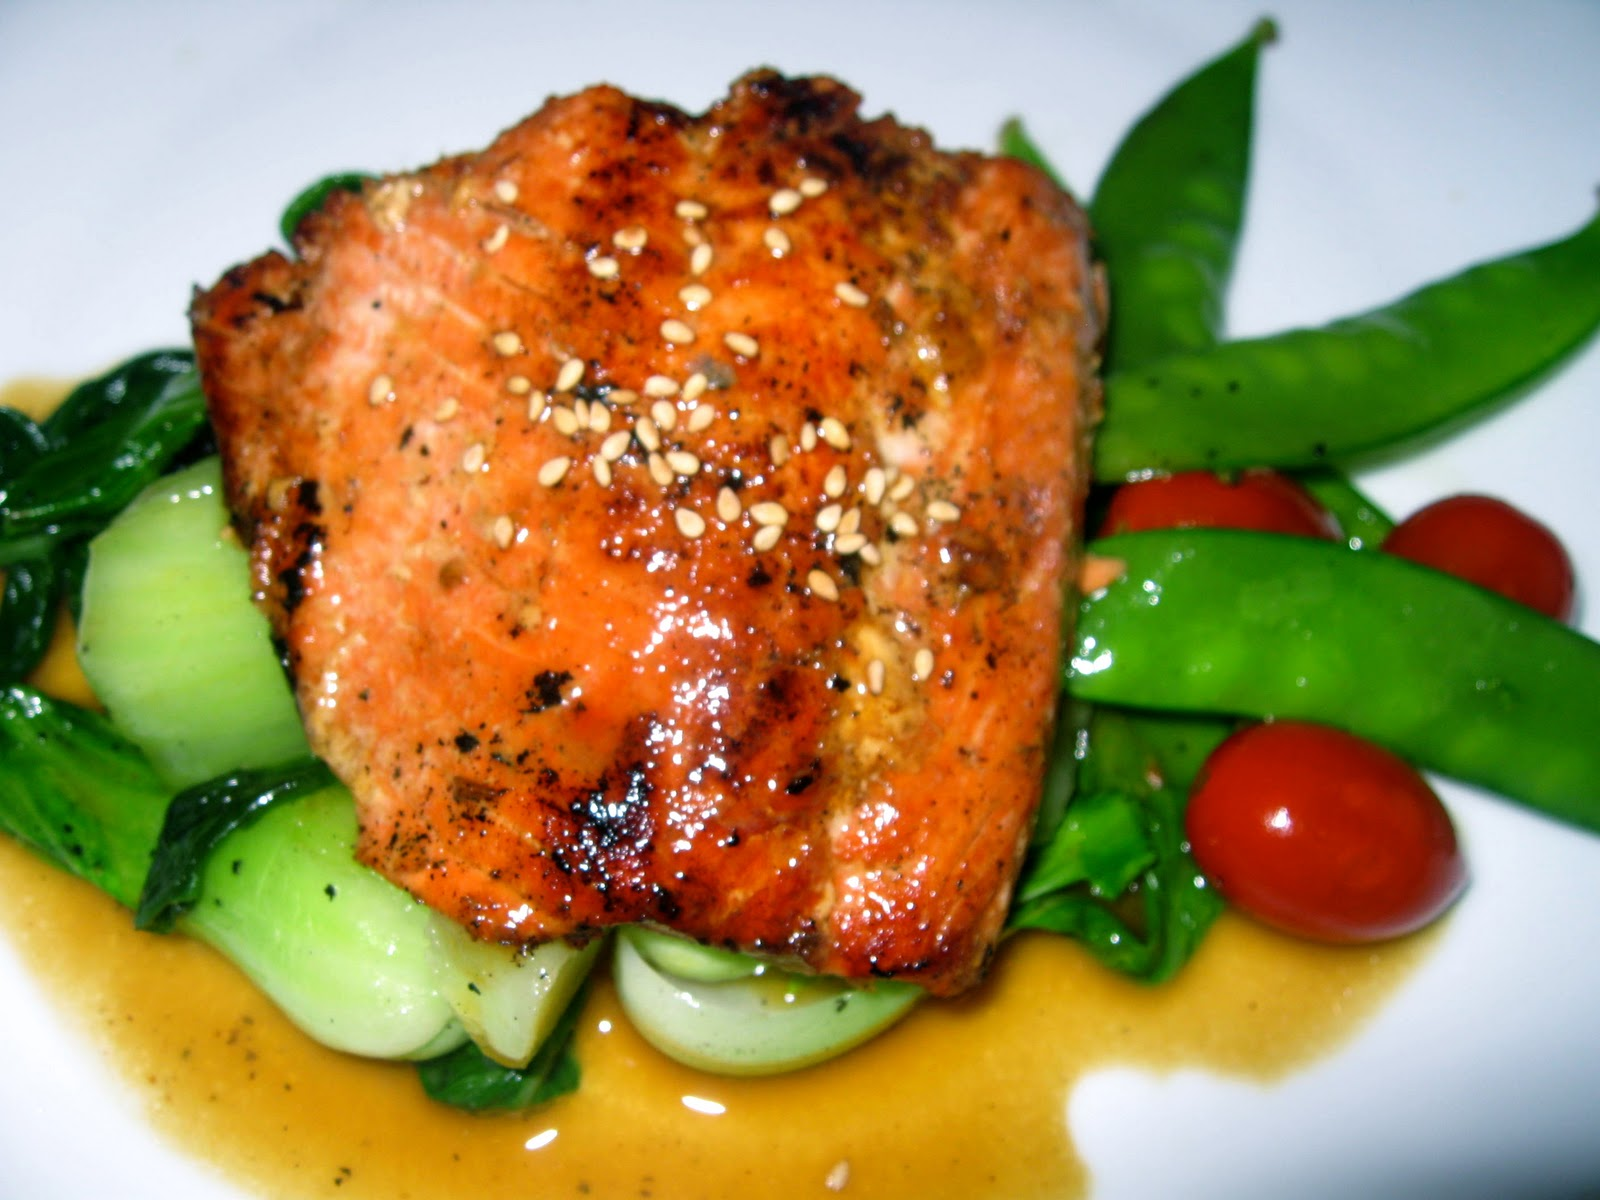 Seared Salmon with -Soy Ginger Glaze and bok choy | Sugar Baking Blog